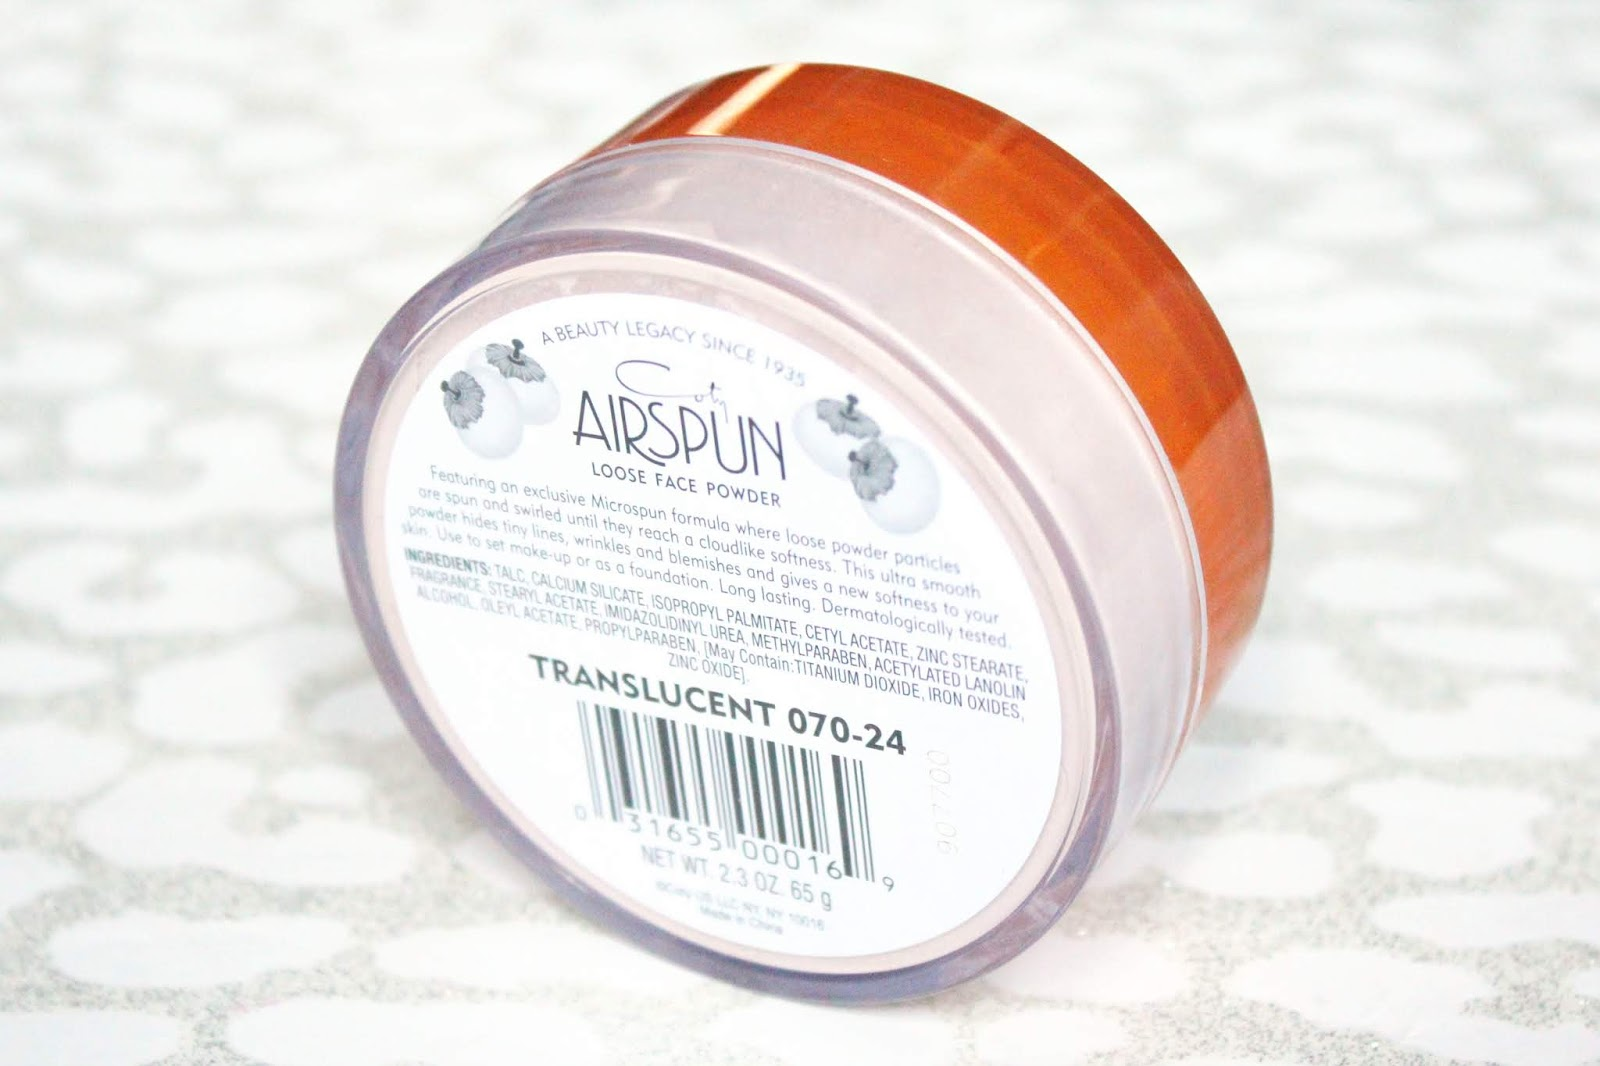 Coty Airspun Loose Translucent Powder Review